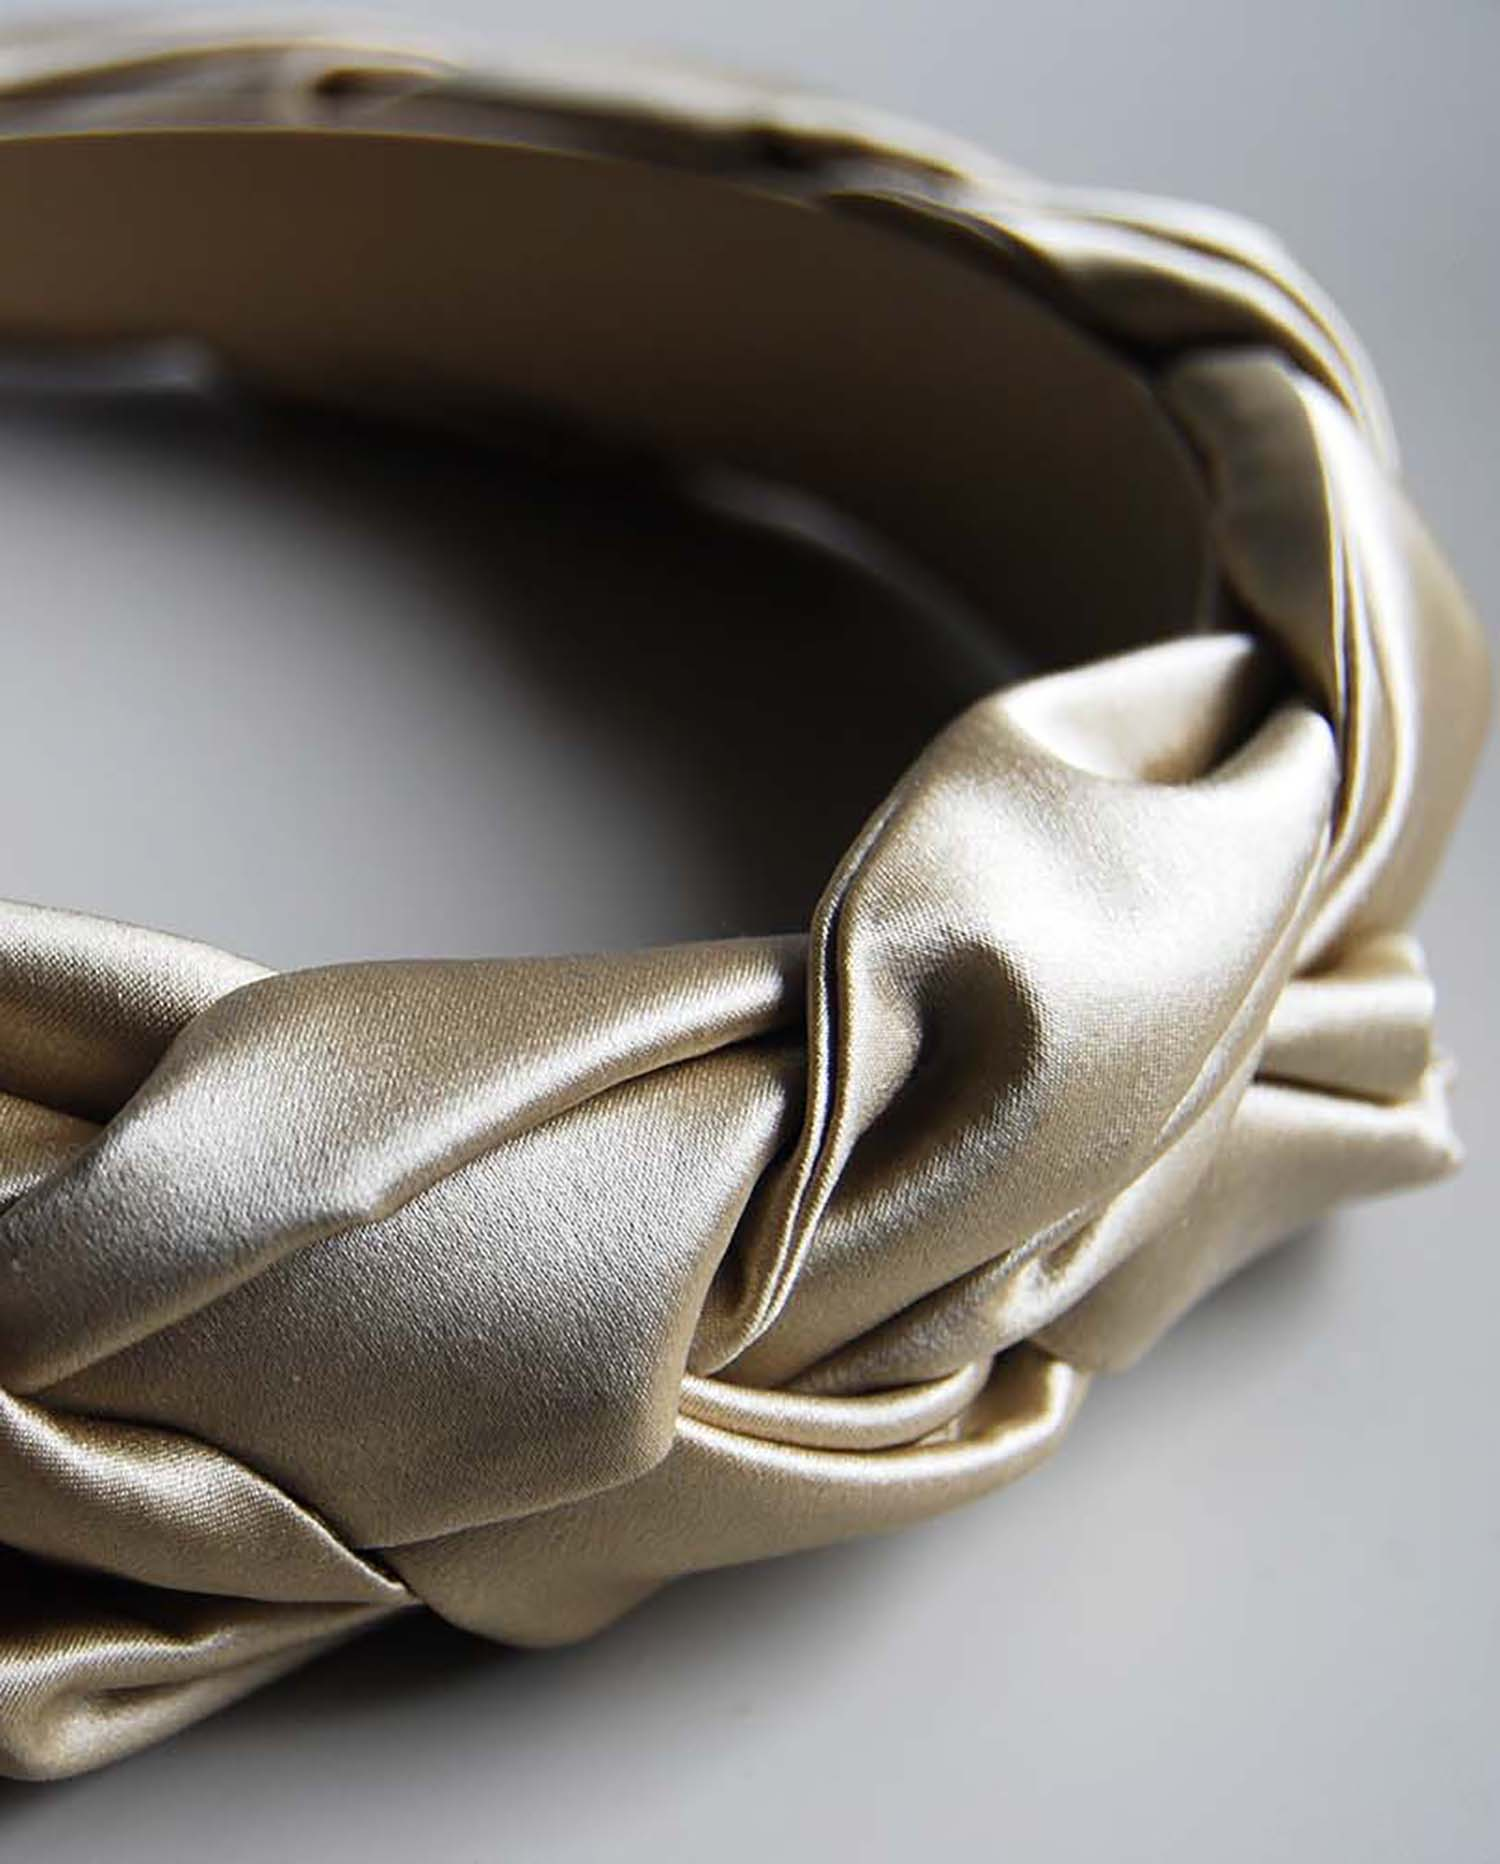 Honor Silk Headband - Pale Gold by Laura Ironside on curated-crowd.com